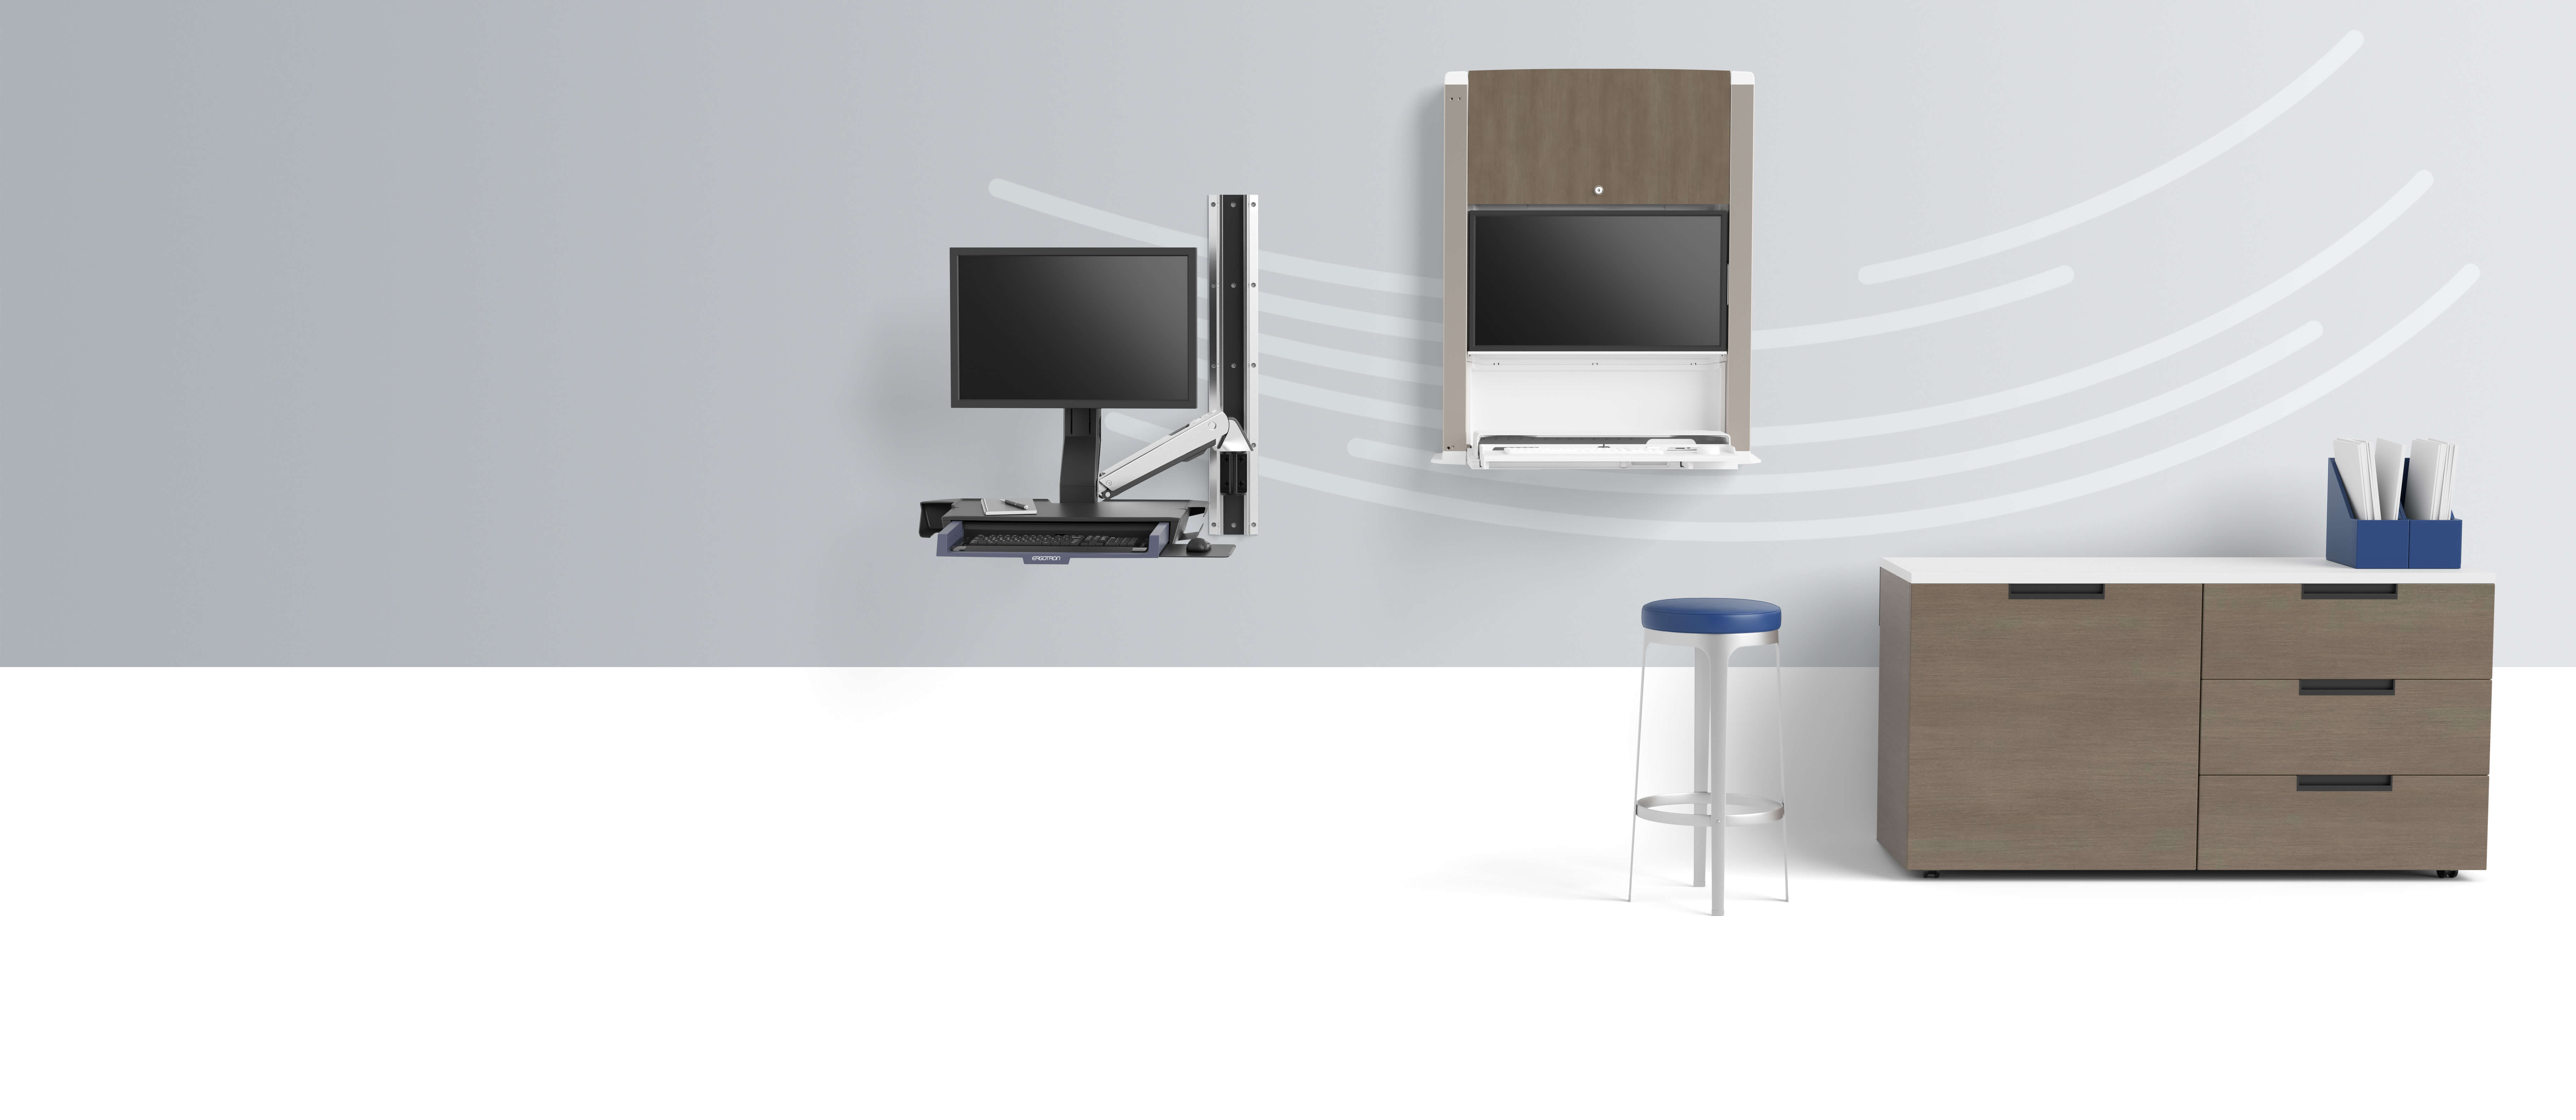 Two desks with stool